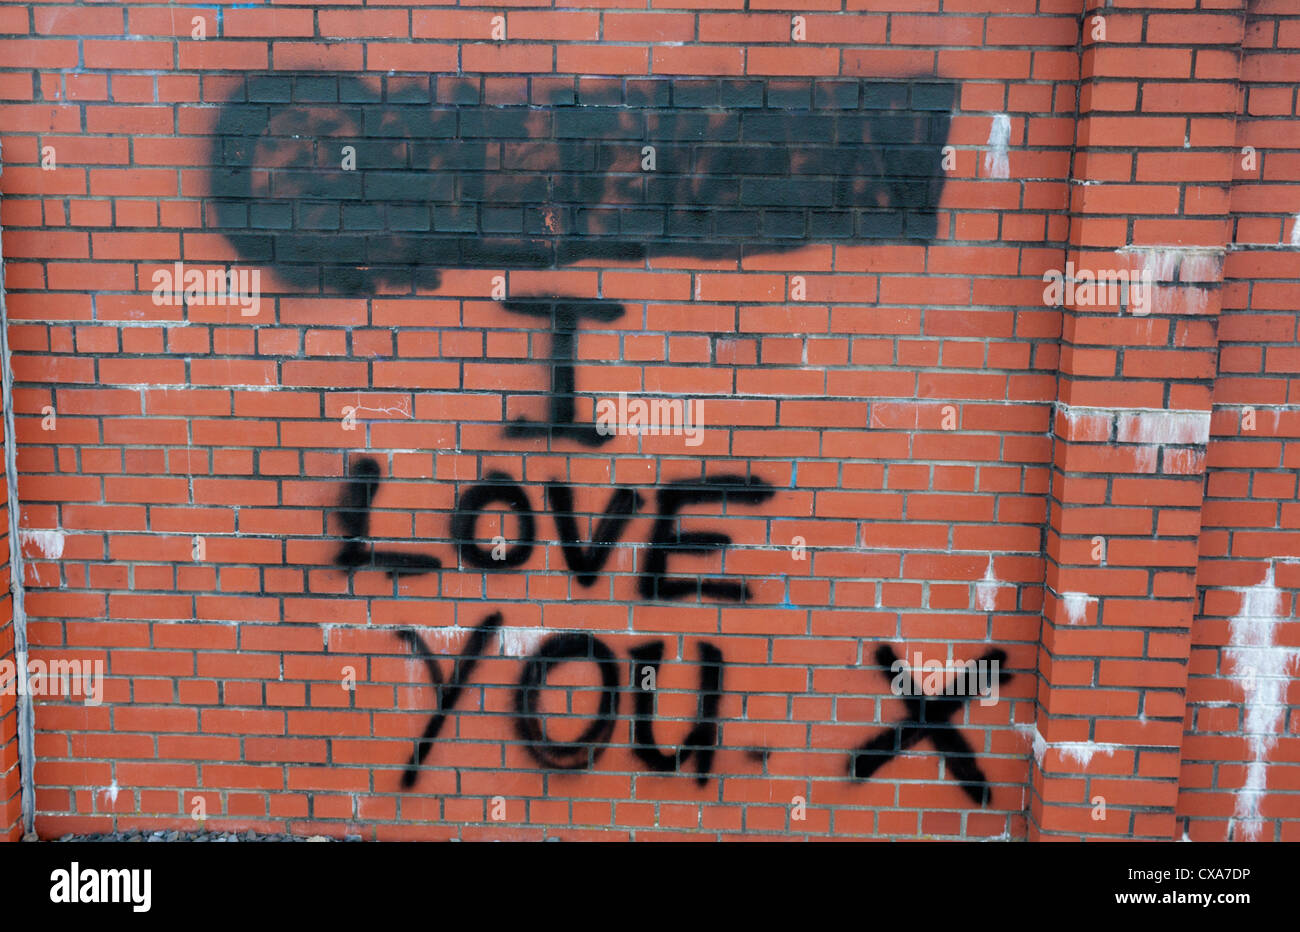 Grafiti wall red -  I Love You Graffiti On Red Brick Wall With Name Above Painted Over